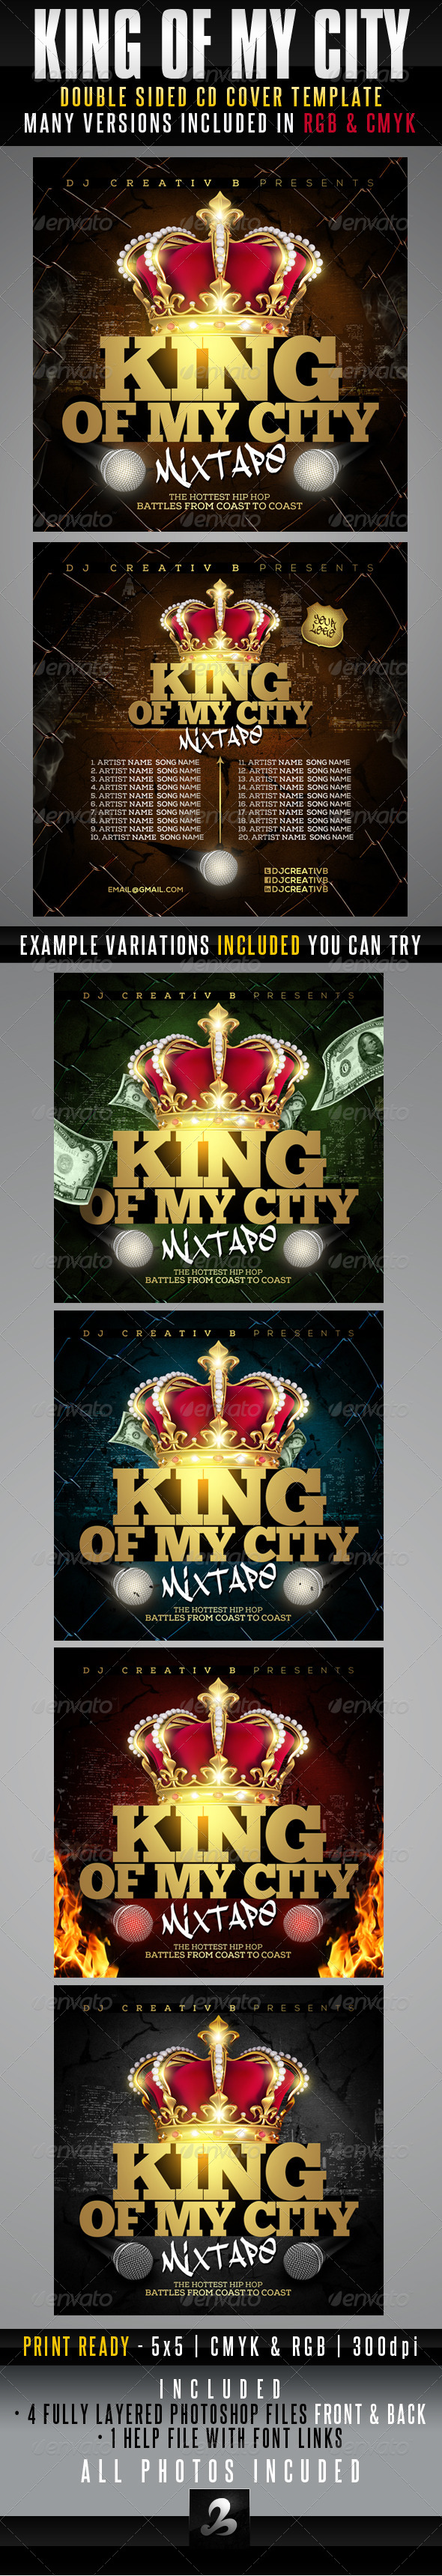 GraphicRiver King Of My City Mixtape CD Cover Template 6364899